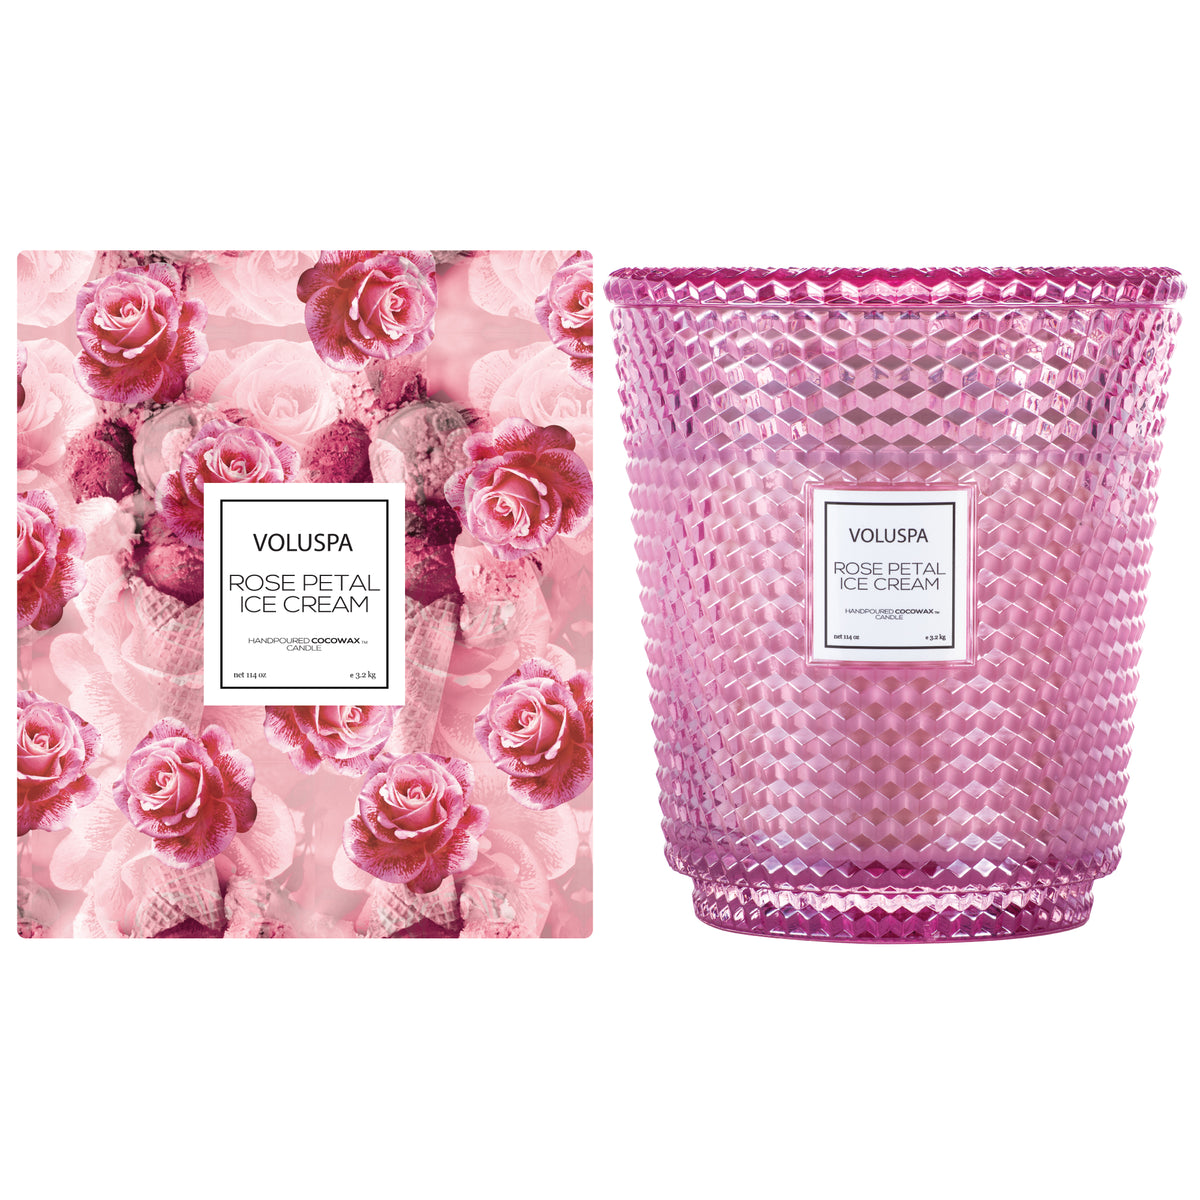 Rose Petal Ice Cream - 5 Wick Hearth Candle - 2